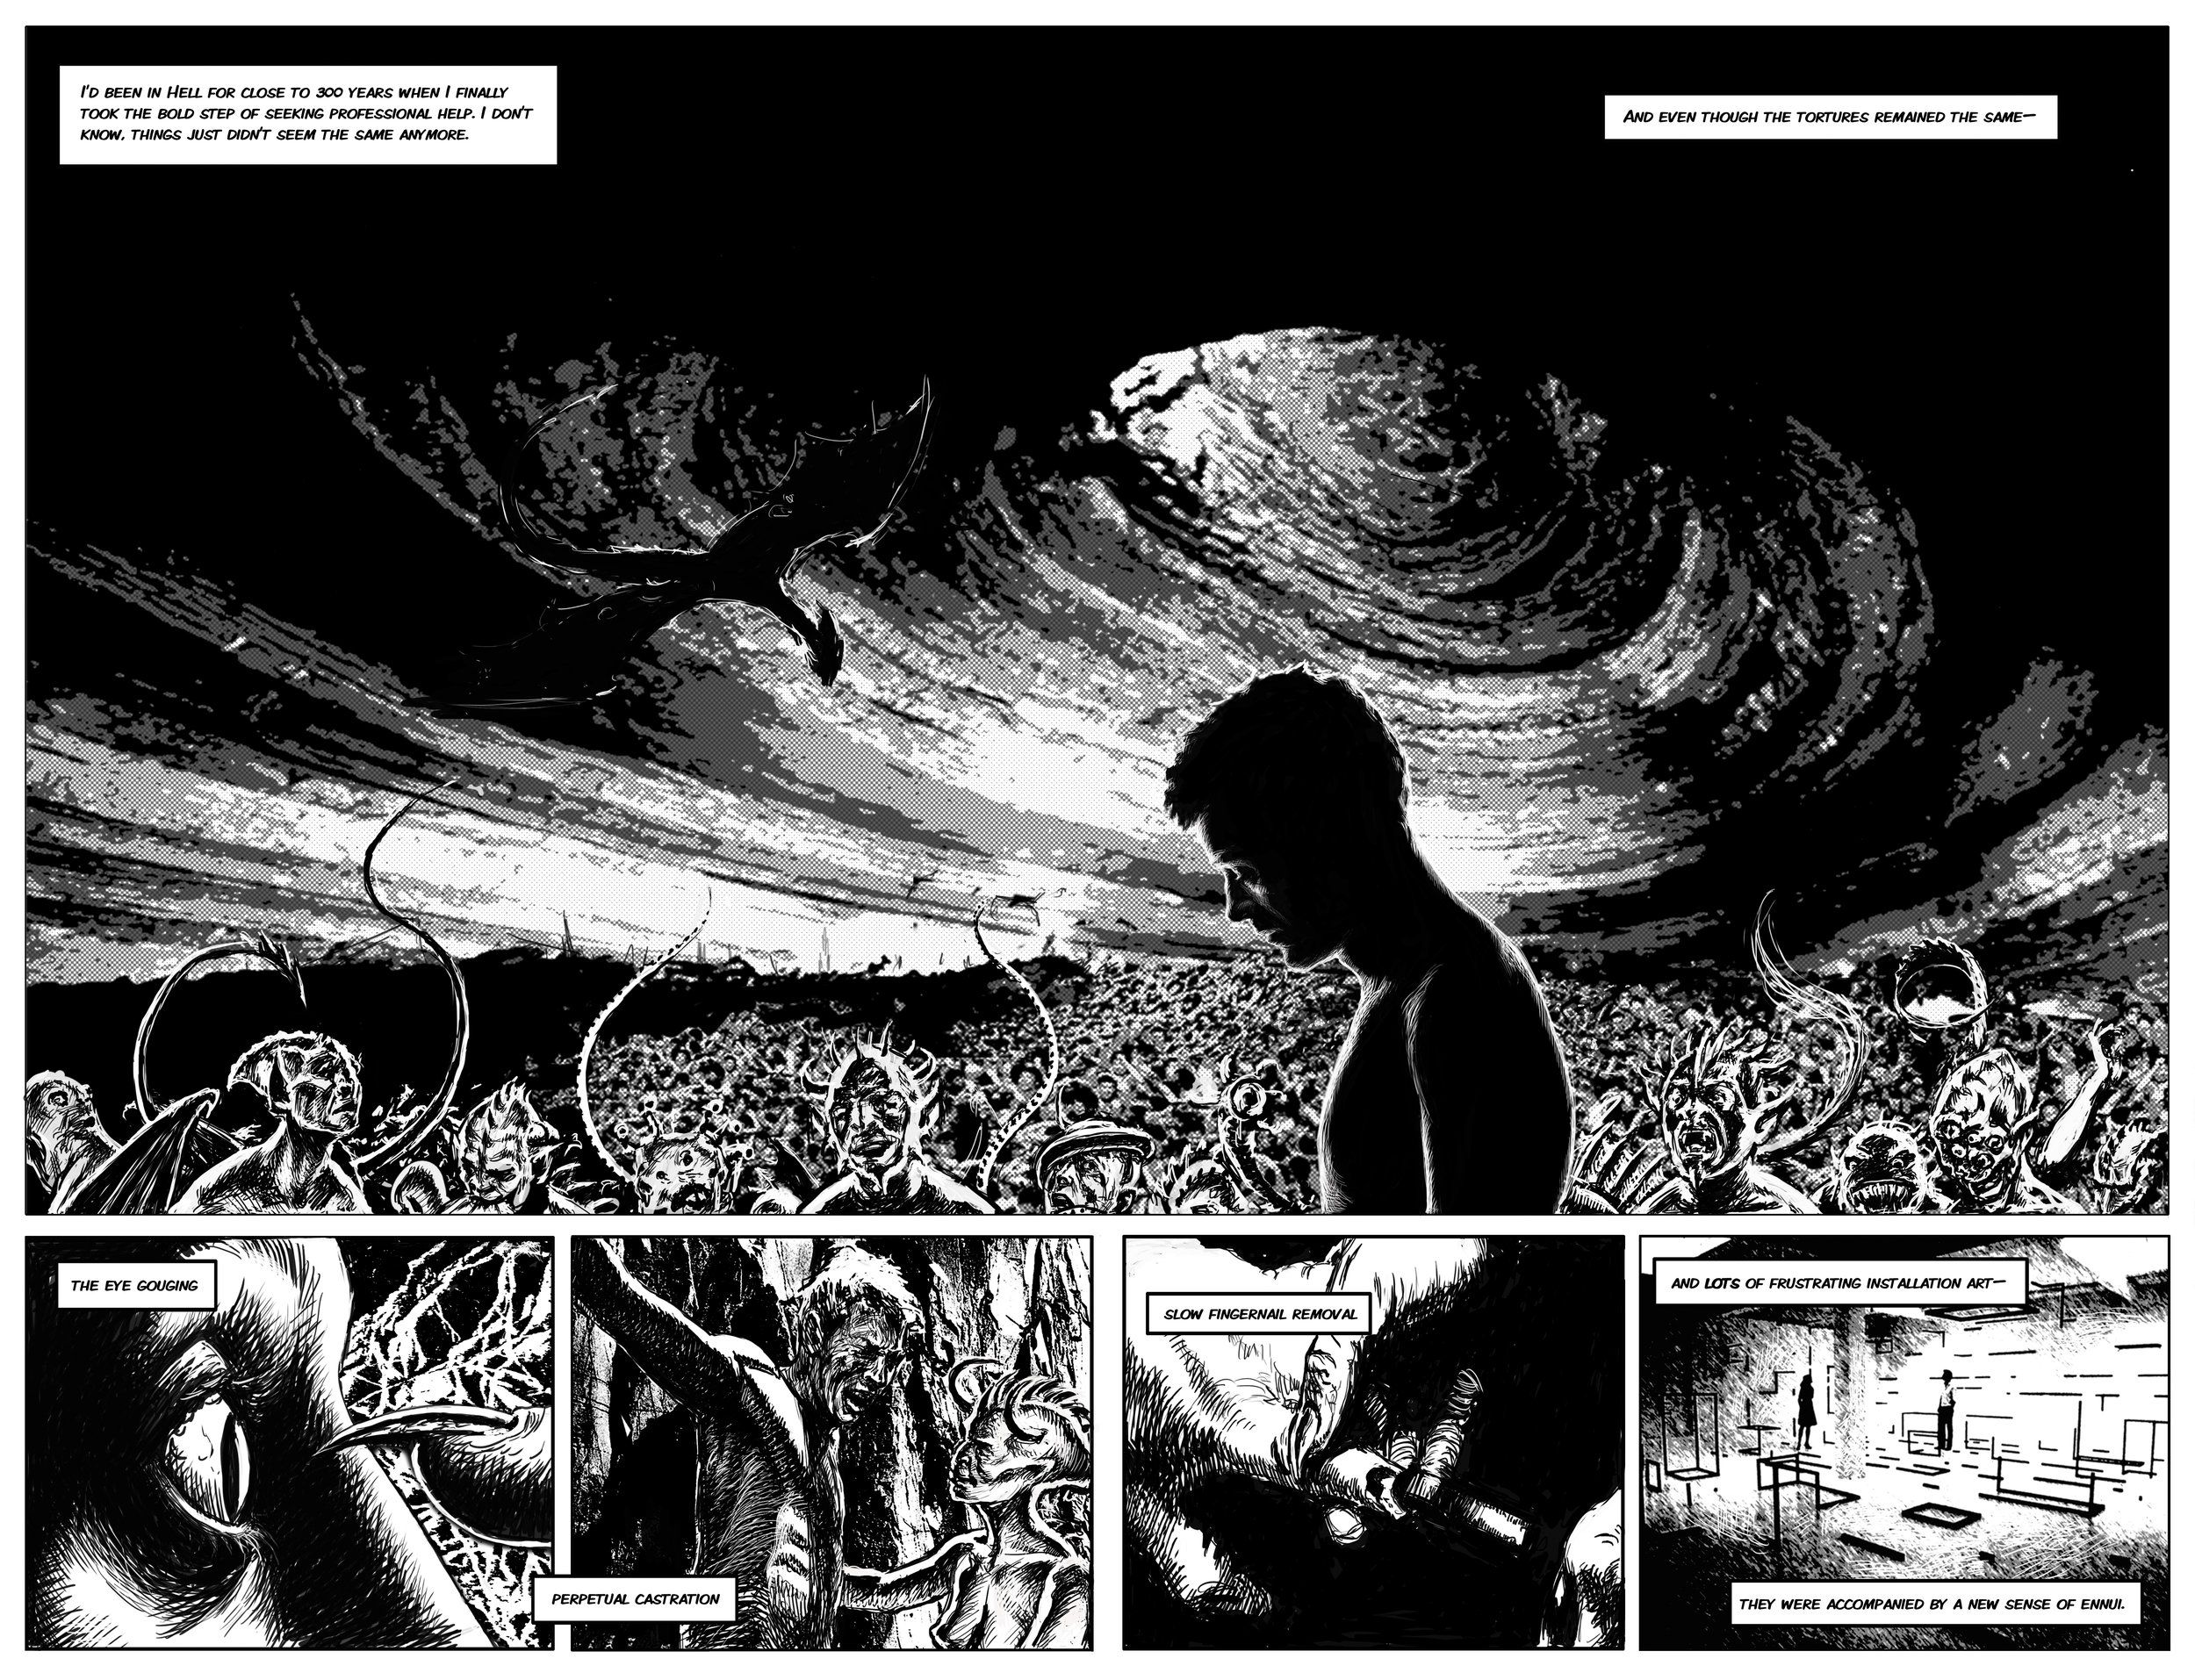 PETER ROSTOVSKY - Comics-based Art and Other Drawings ...